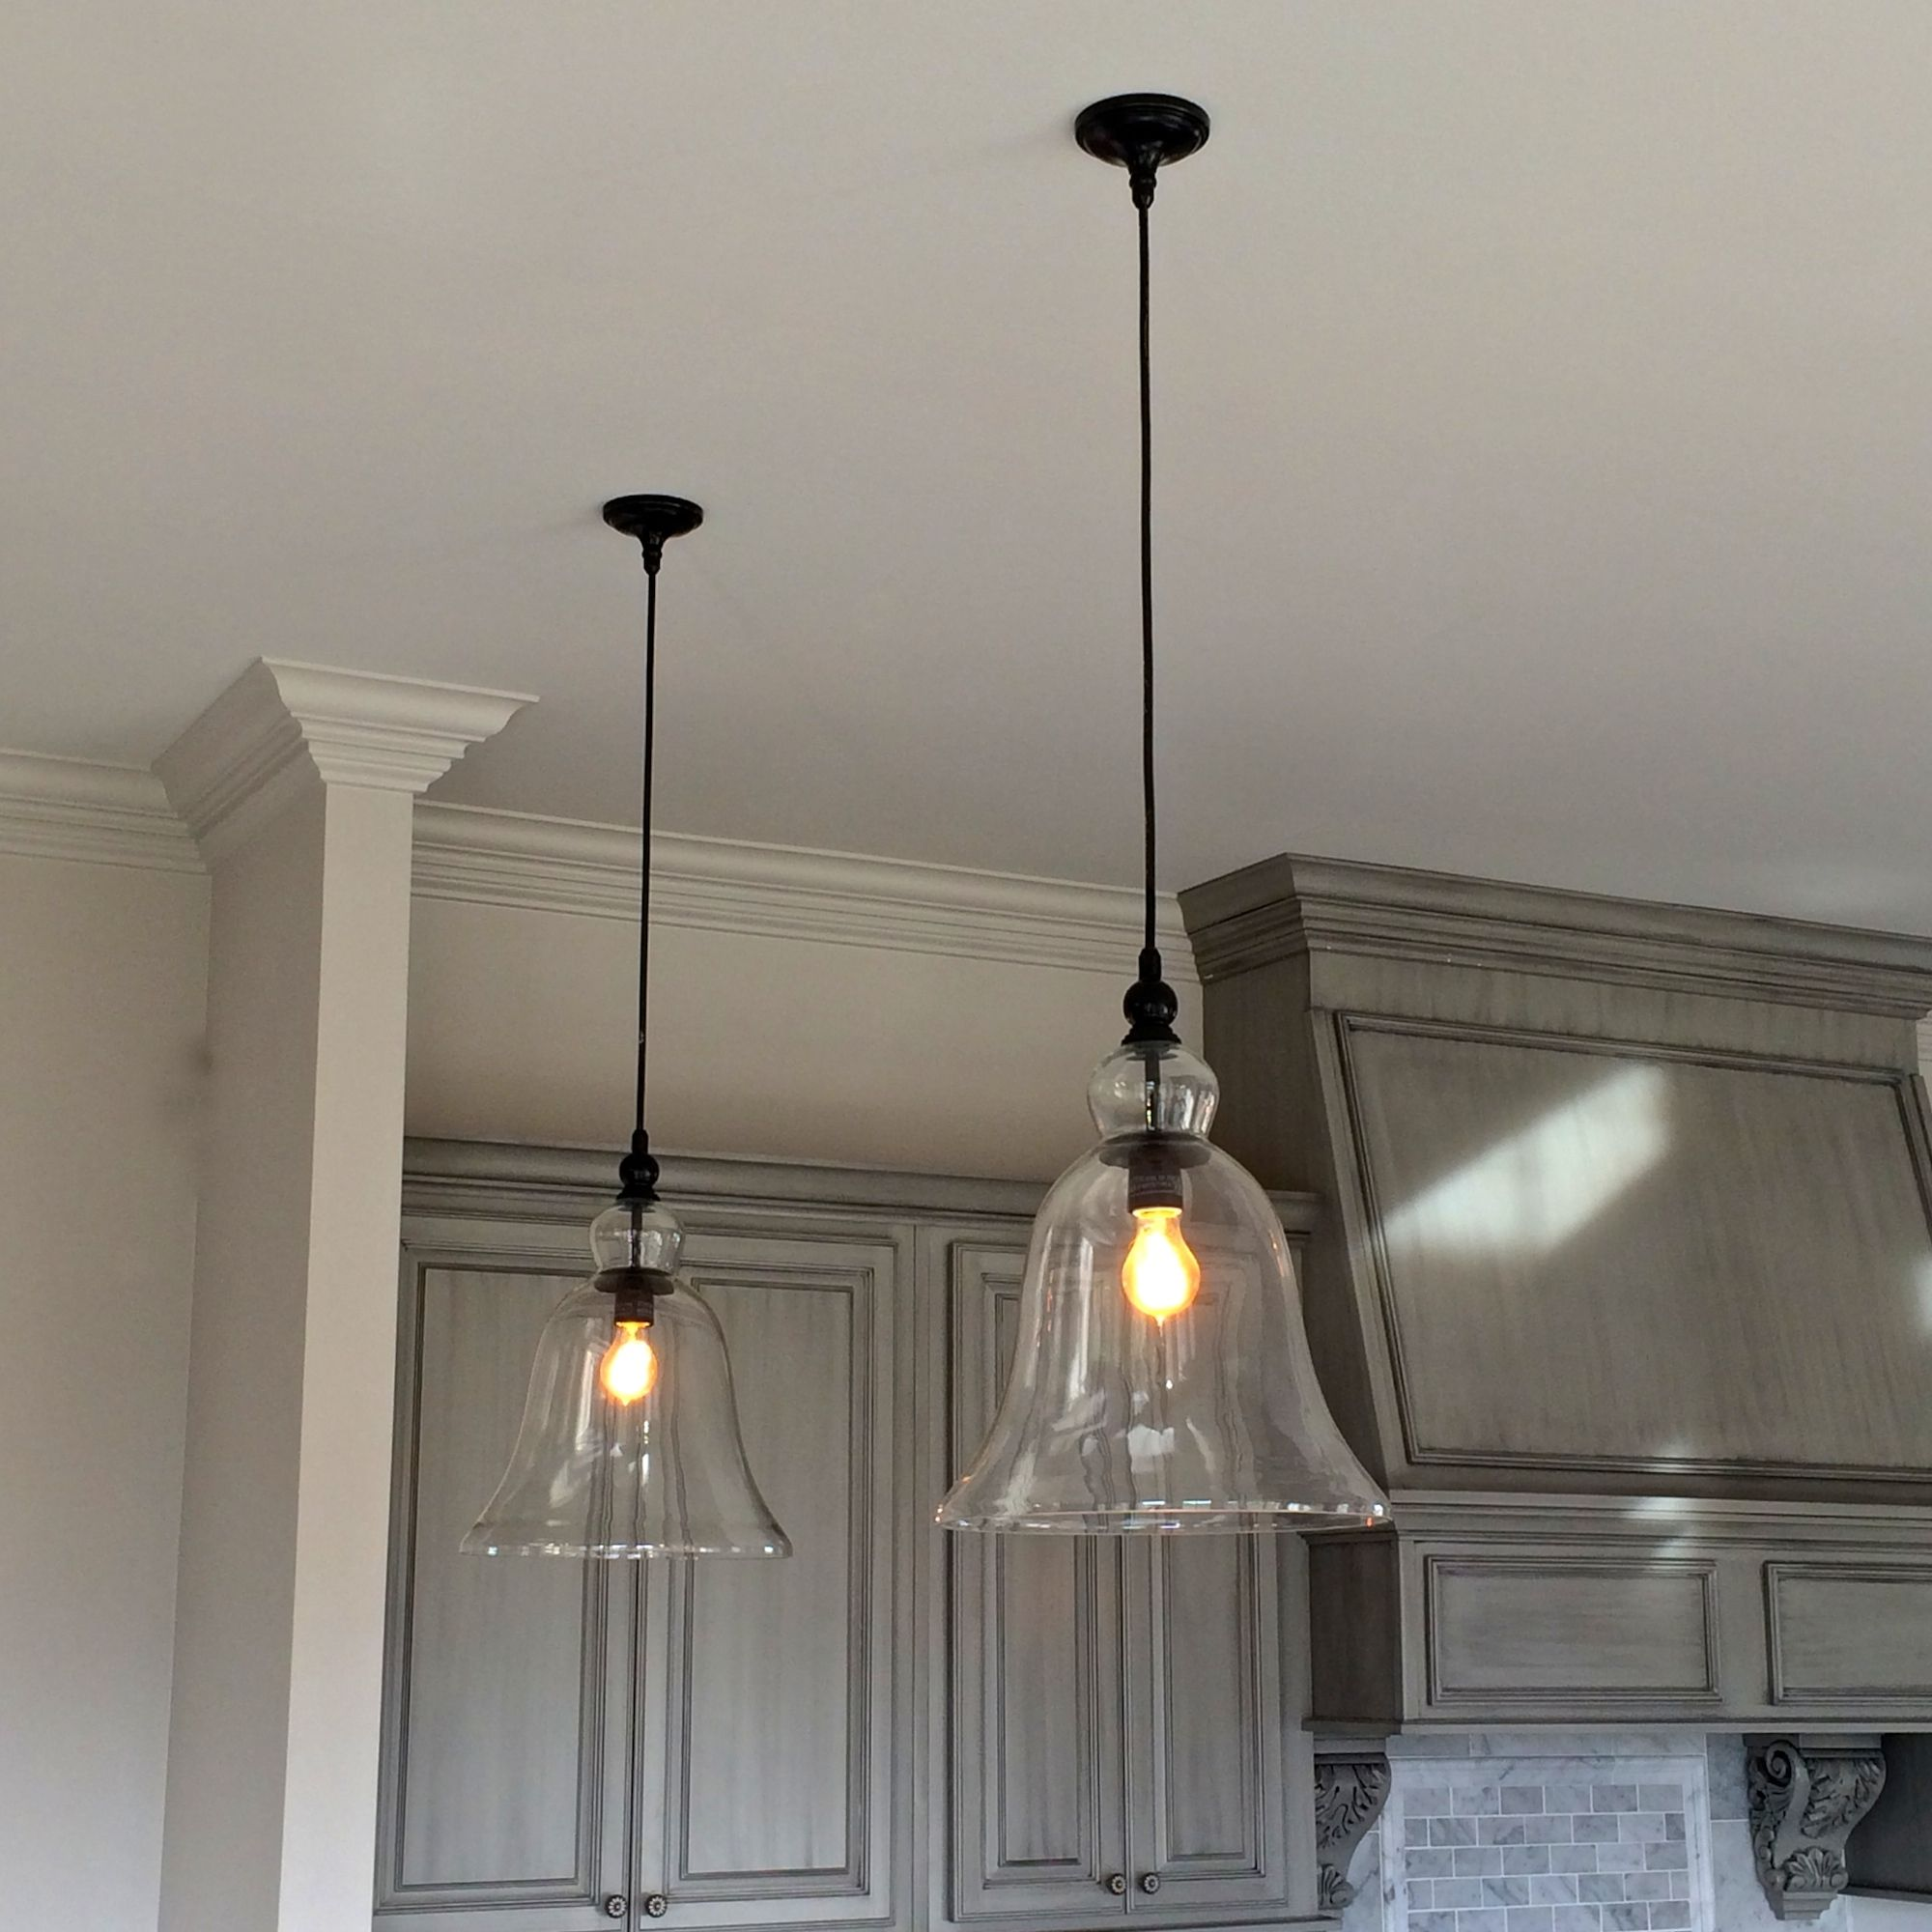 above kitchen counter large glass bell hanging pendant lights